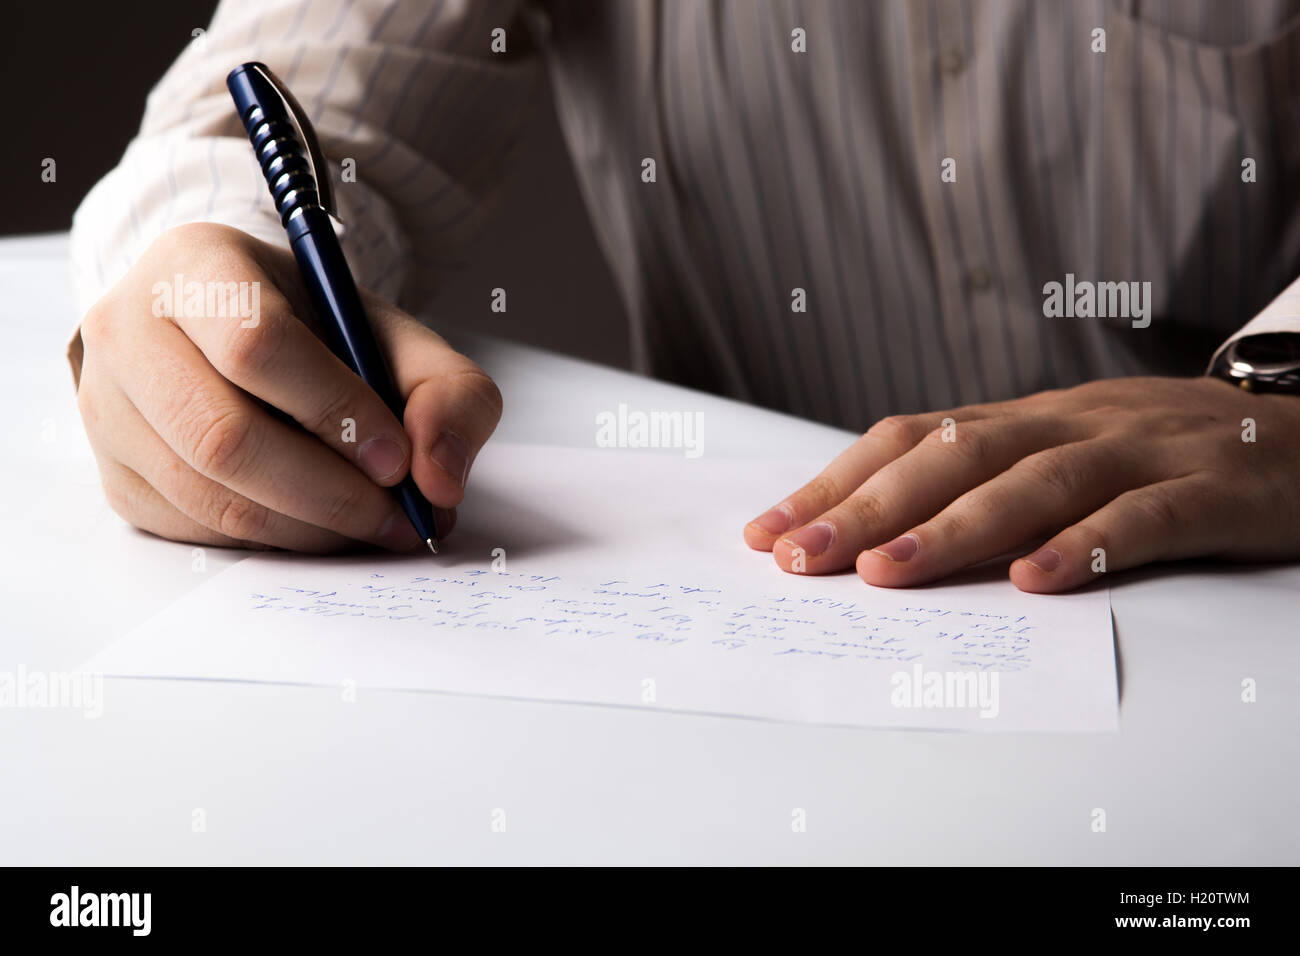 man is  writting on a sheet of paper - Stock Image